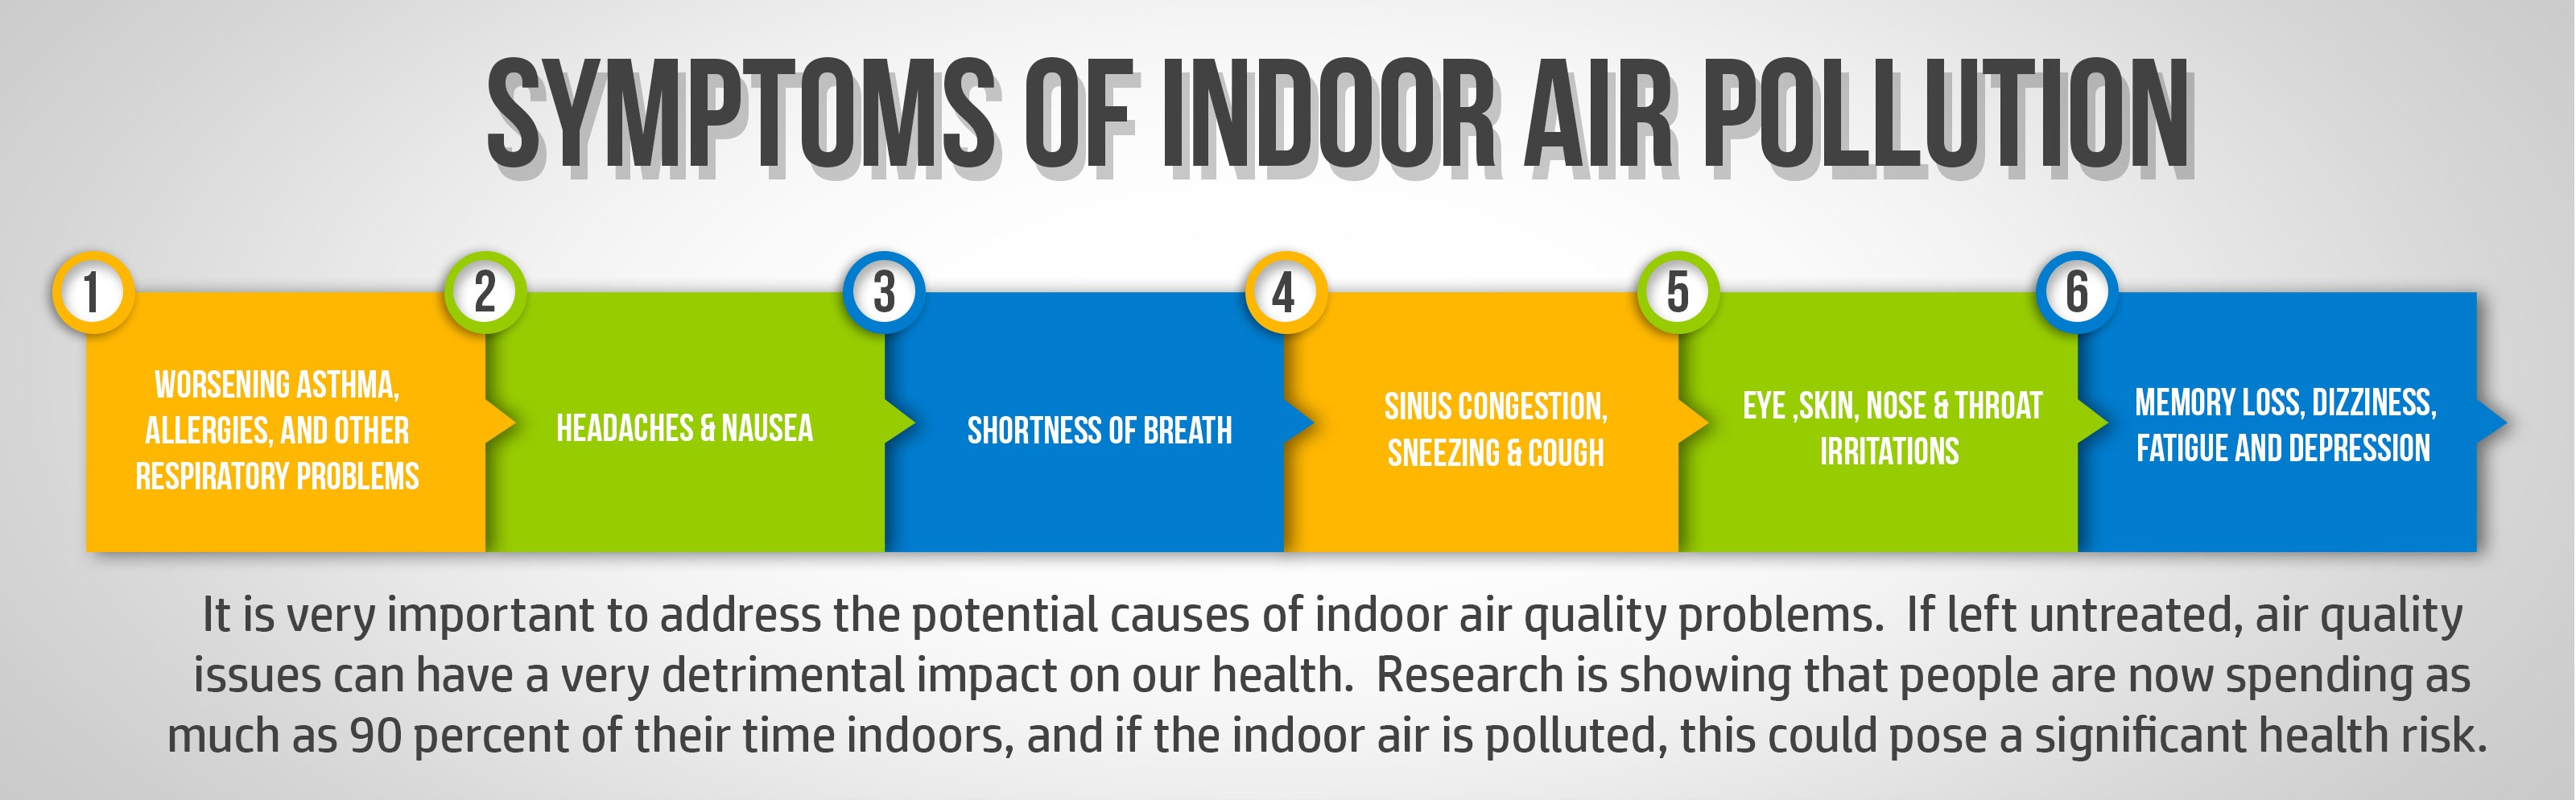 Symptoms Of Air Polution Indoors